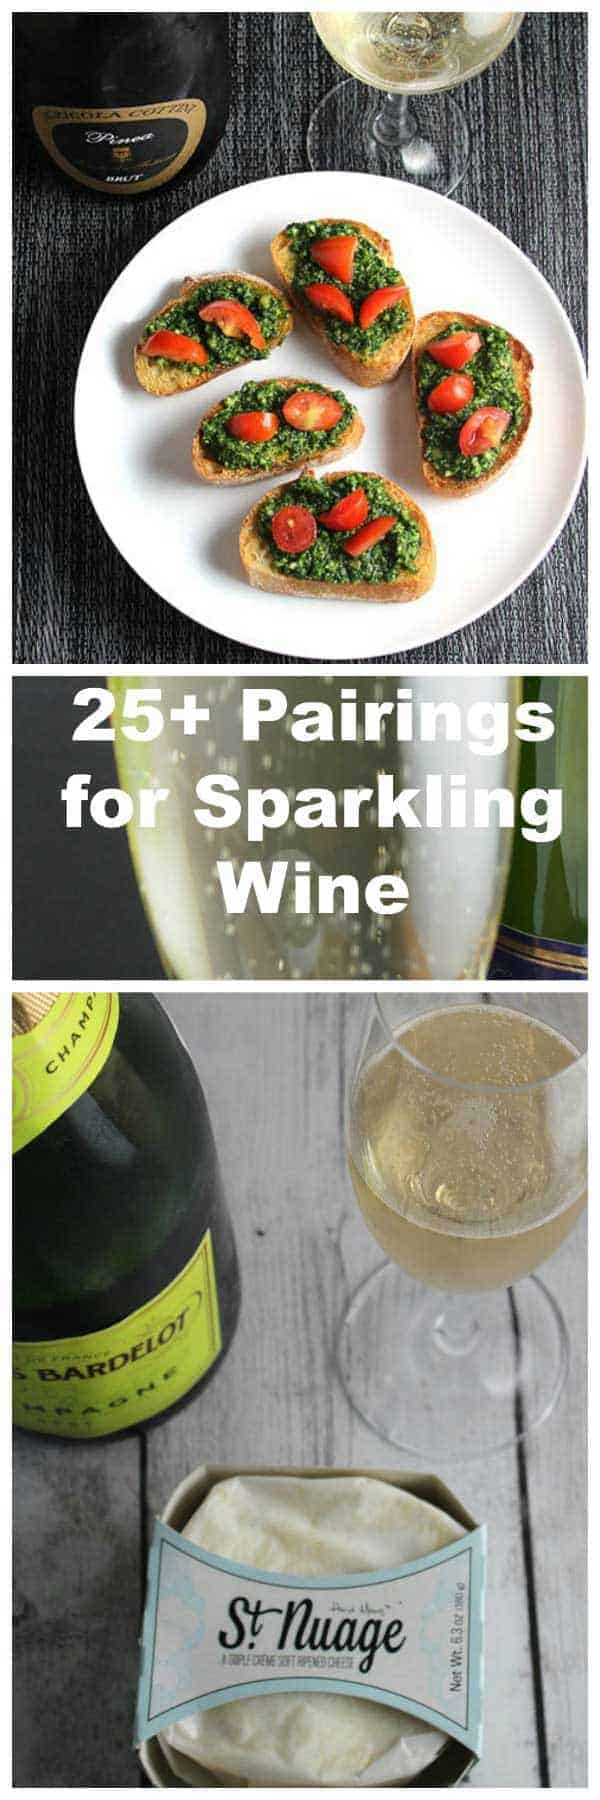 Over 25 food pairings to go with Champagne and other sparkling wine. #Champagne #NewYearsEve #SparklingWine